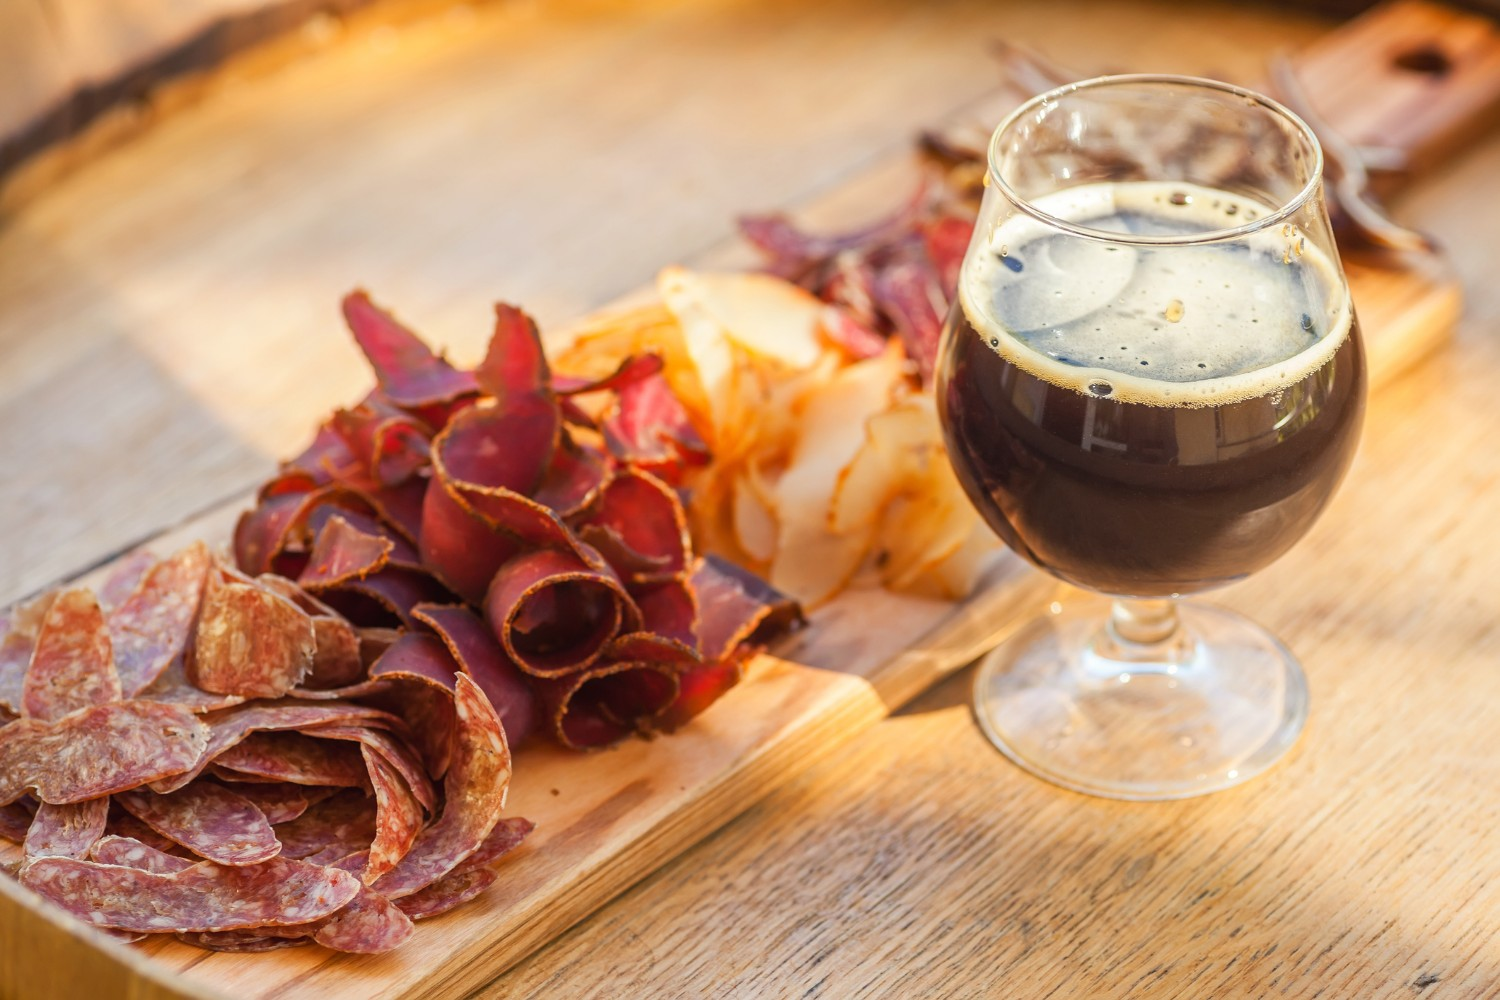 Craft beer and snacks at a local Asheville brewery. Read our blog on Asheville breweries for our top recommendations!